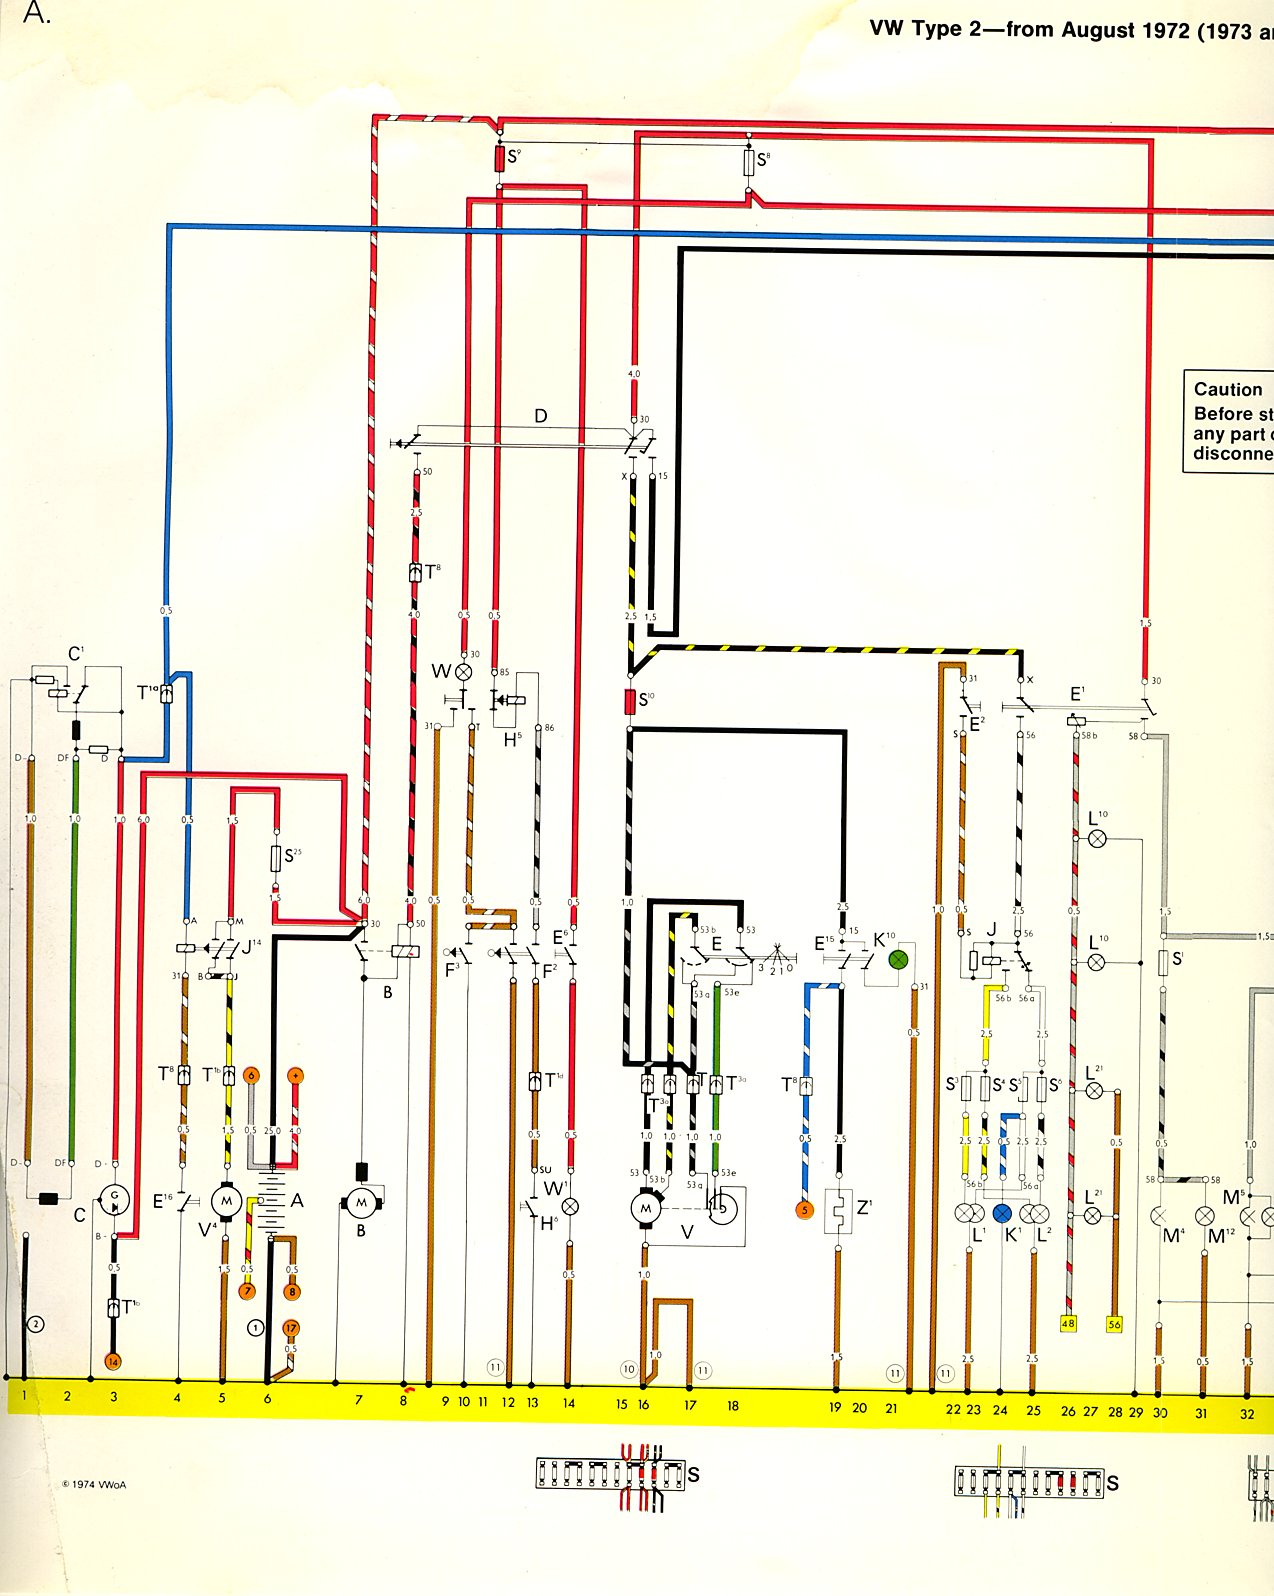 baybus_7374a vw bus wiring diagram 1965 vw bus wiring diagram \u2022 wiring diagrams 1970 vw bug wiring diagram at bayanpartner.co